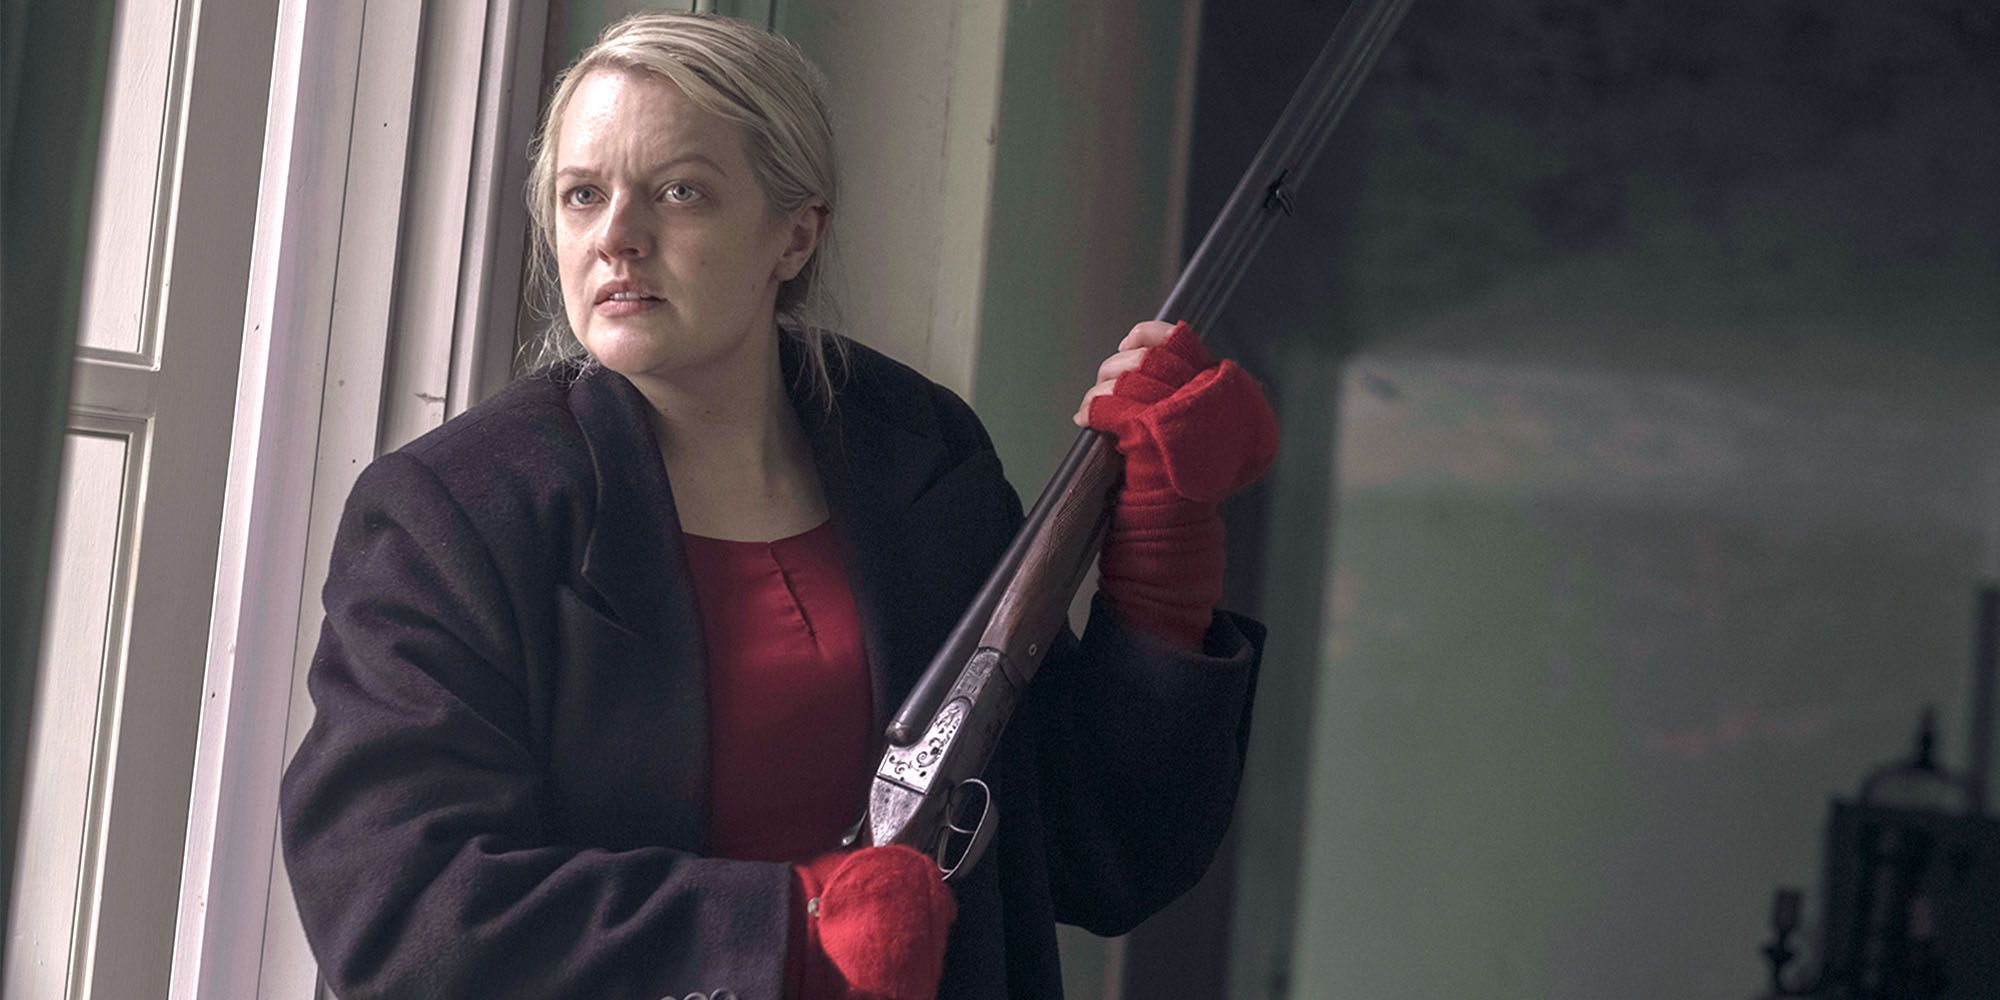 Will The Handmaid's Tale continue its reign?